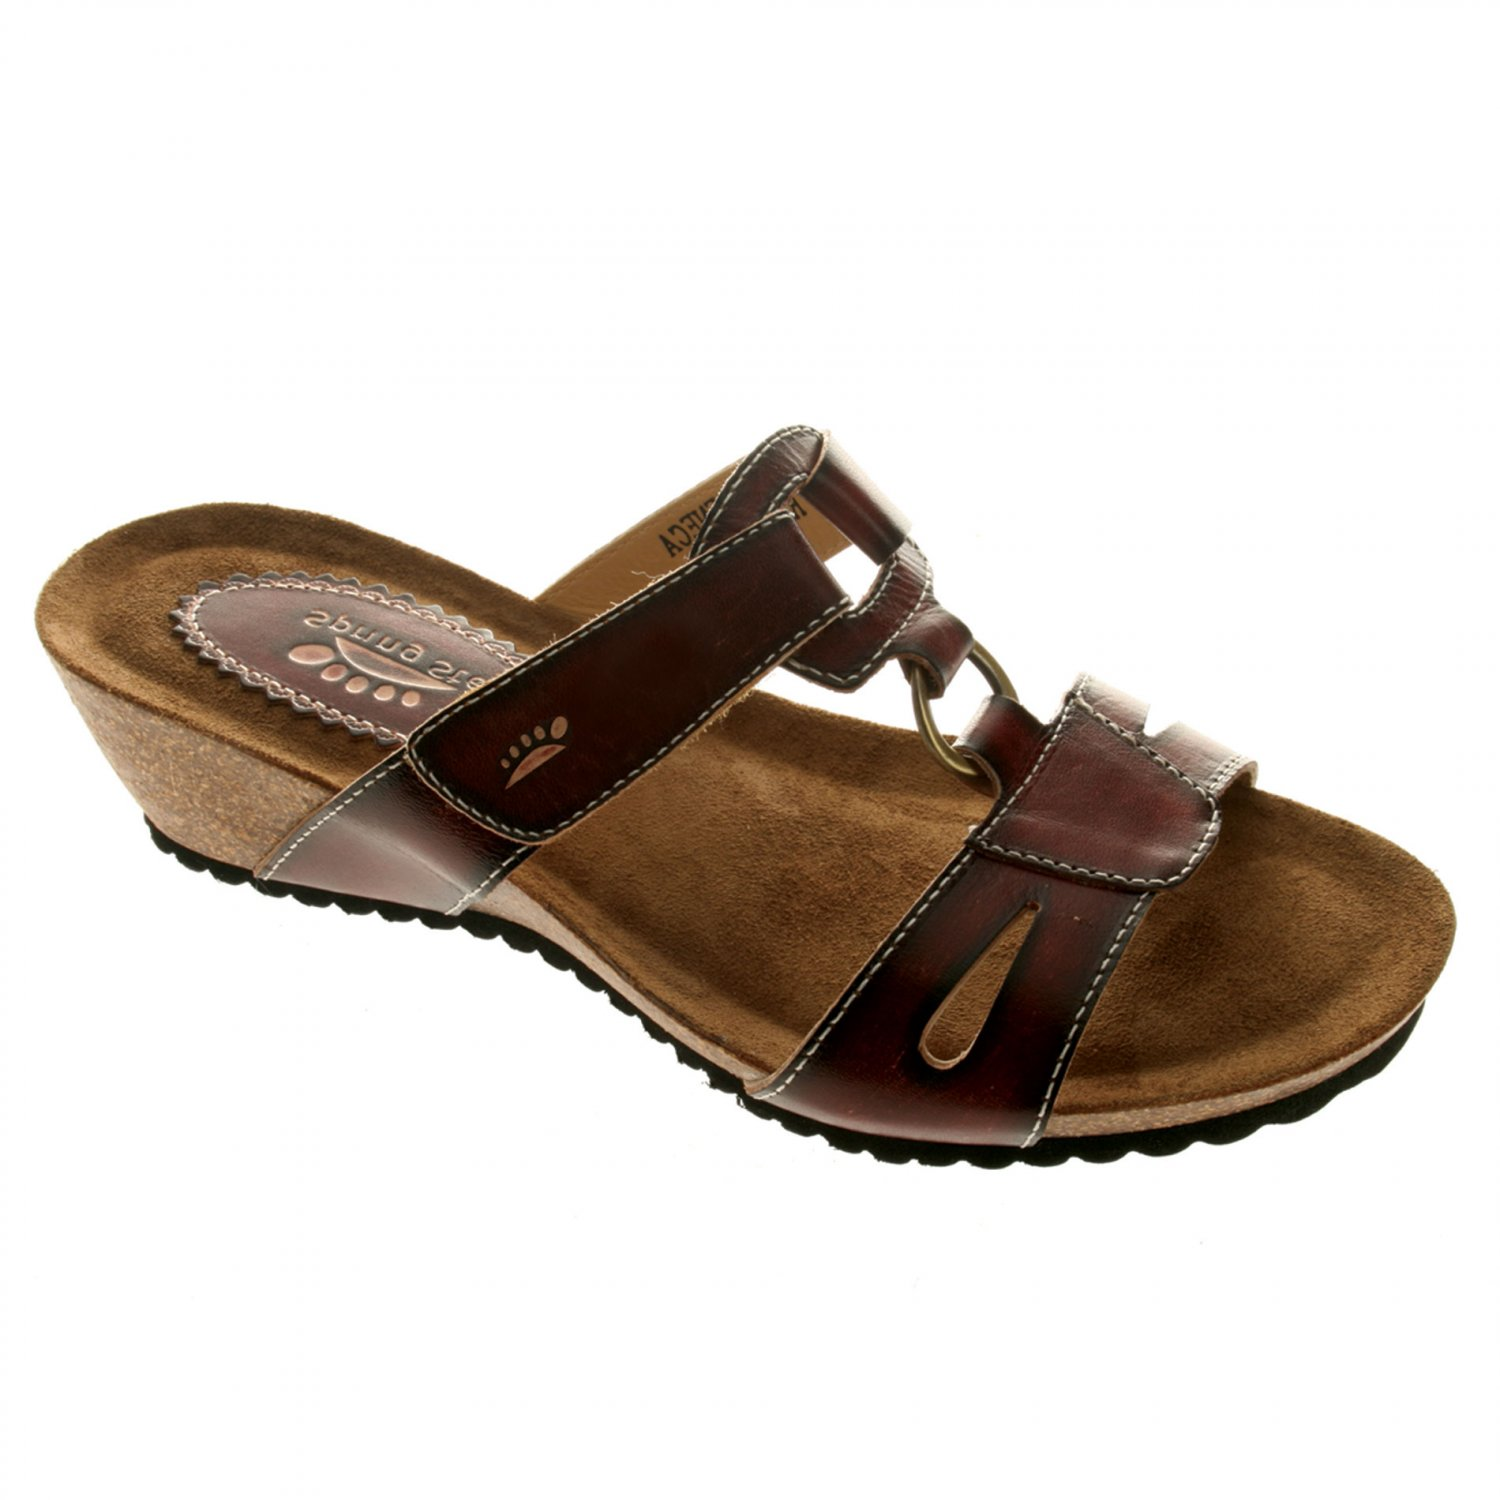 Spring Step SENECA Sandals Shoes All Sizes & Colors $7